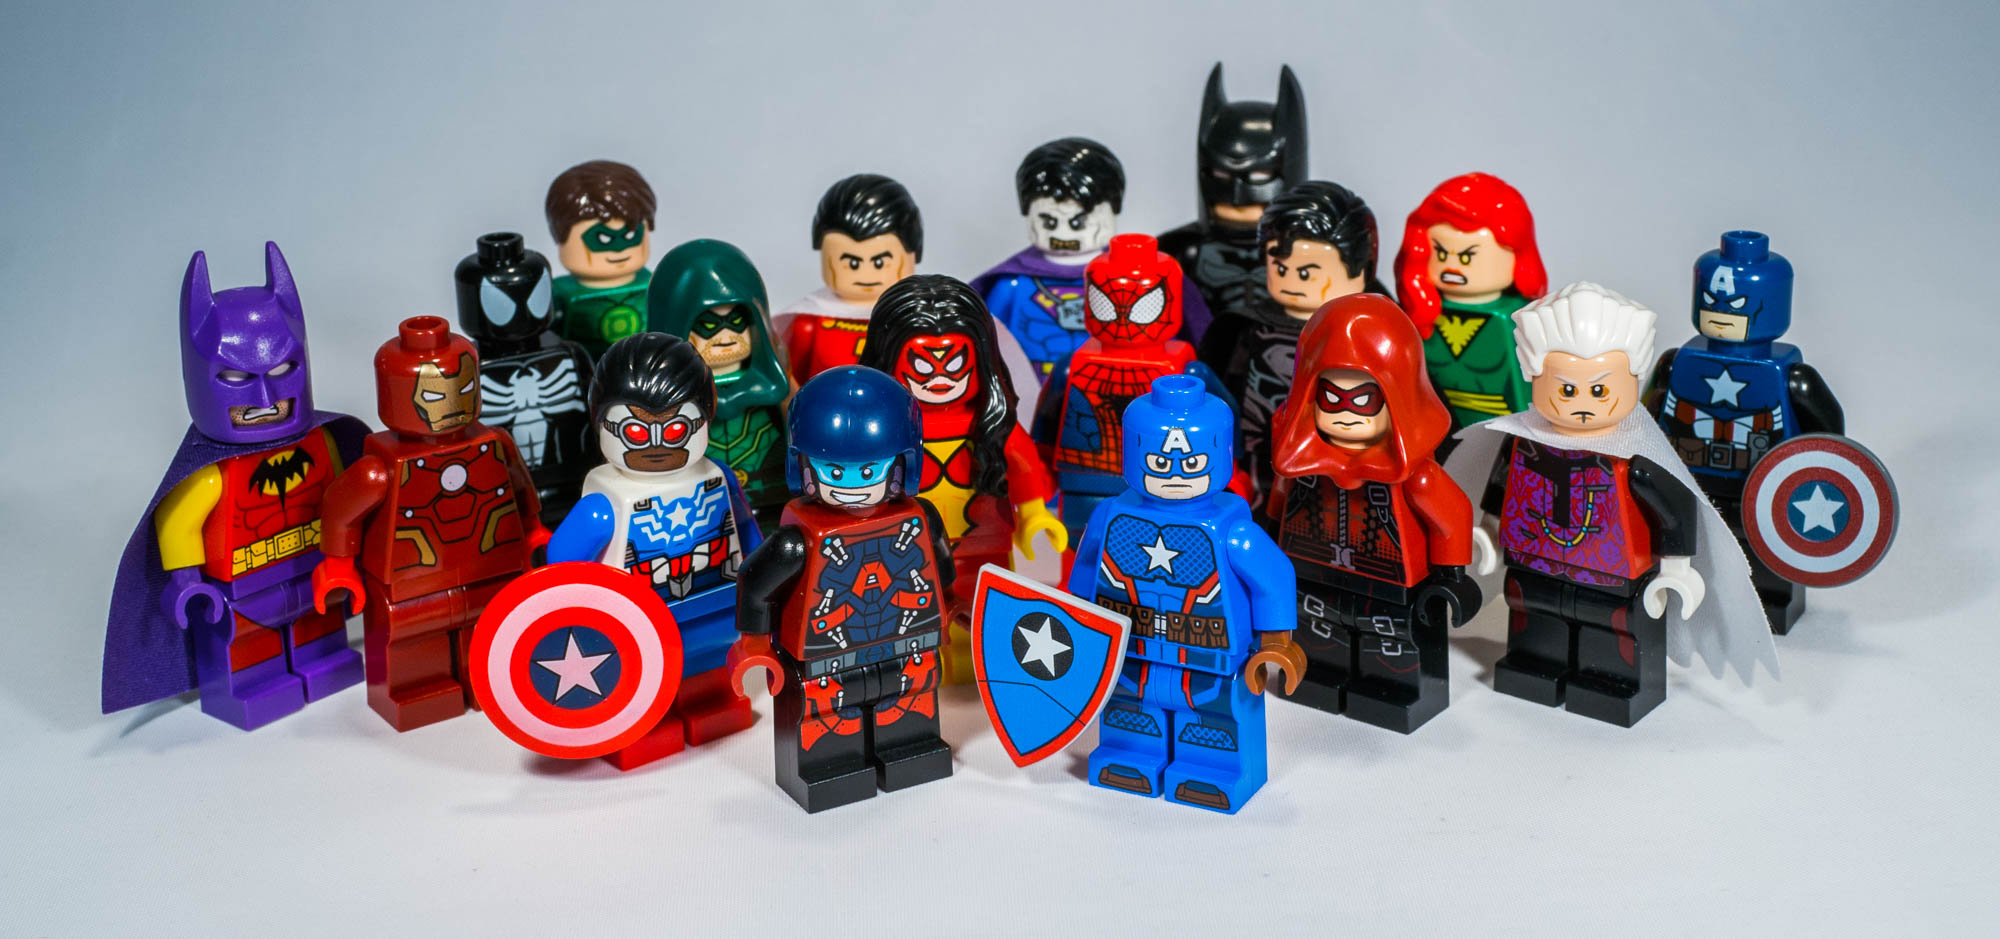 Lego SDCC / Toy Fair Exclusive Minifigures Collection